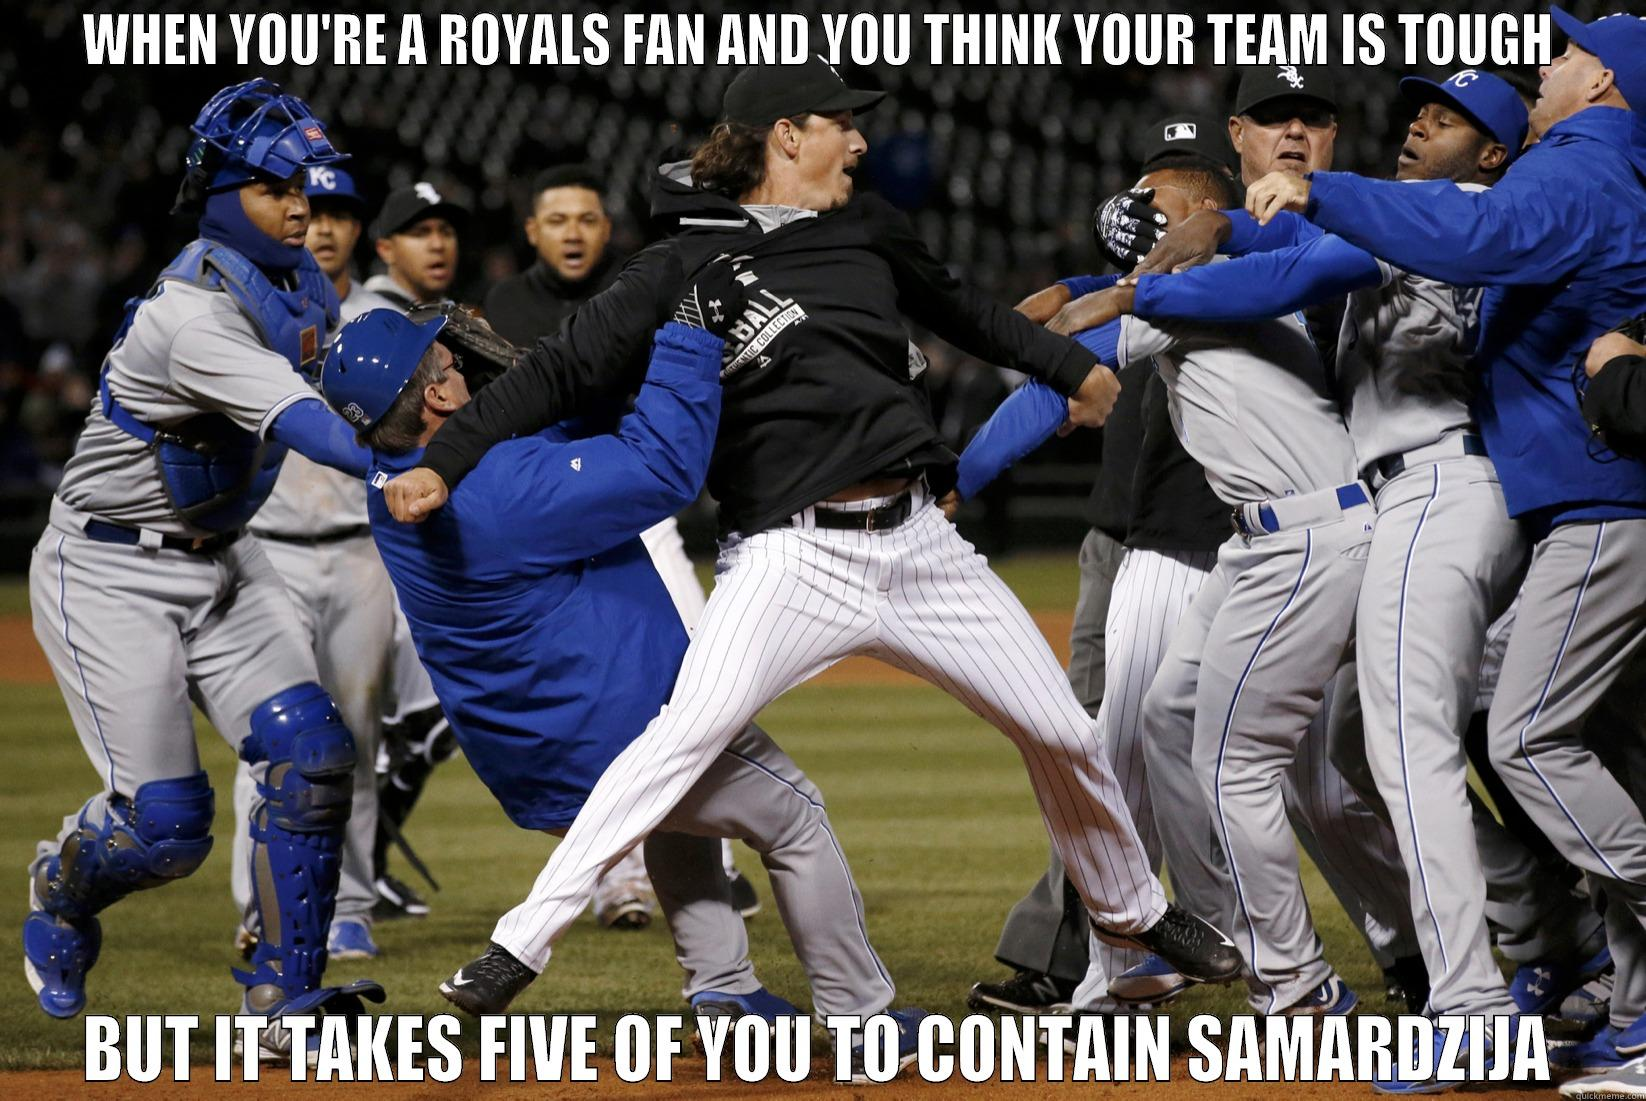 WHEN YOU'RE A ROYALS FAN AND YOU THINK YOUR TEAM IS TOUGH BUT IT TAKES FIVE OF YOU TO CONTAIN SAMARDZIJA Misc